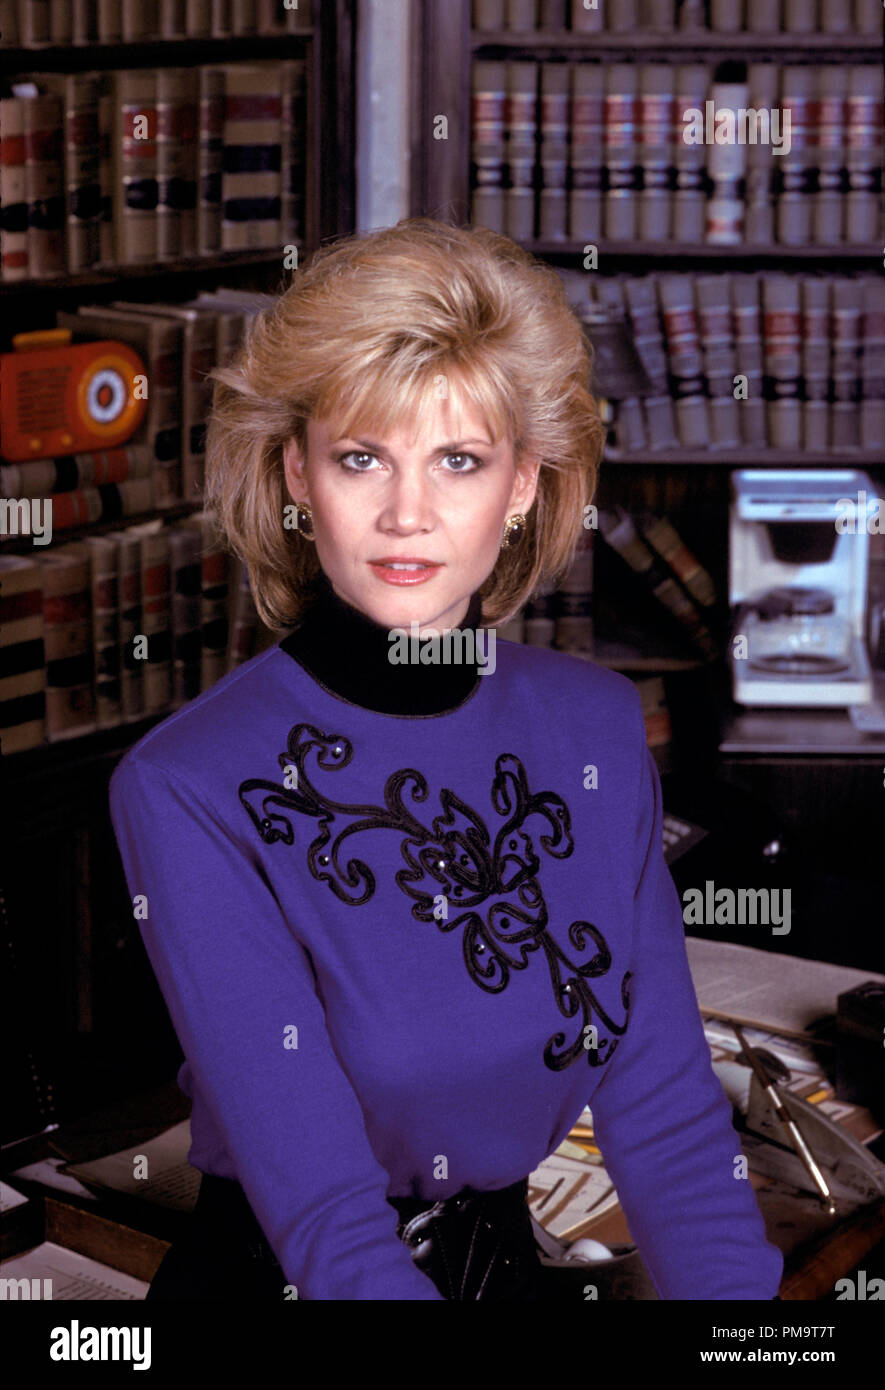 Studio Publicity Still from 'Night Court' Markie Post 1988   All Rights Reserved   File Reference # 31694146THA  For Editorial Use Only - Stock Image